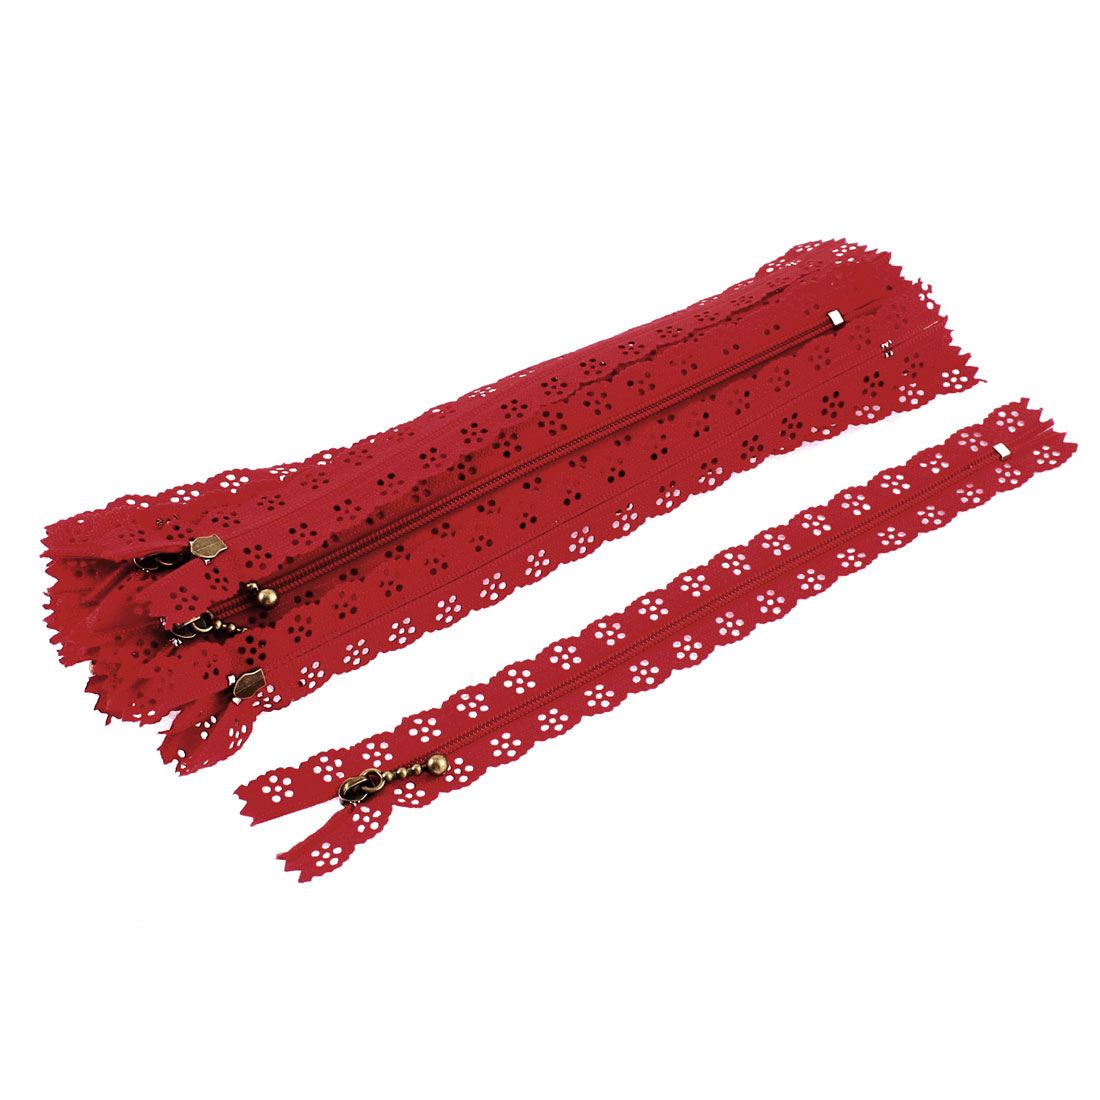 Nylon Coil Zippers Lace Edge Tailor Bag Clothing DIY Craft Red 20cm 20 Pcs